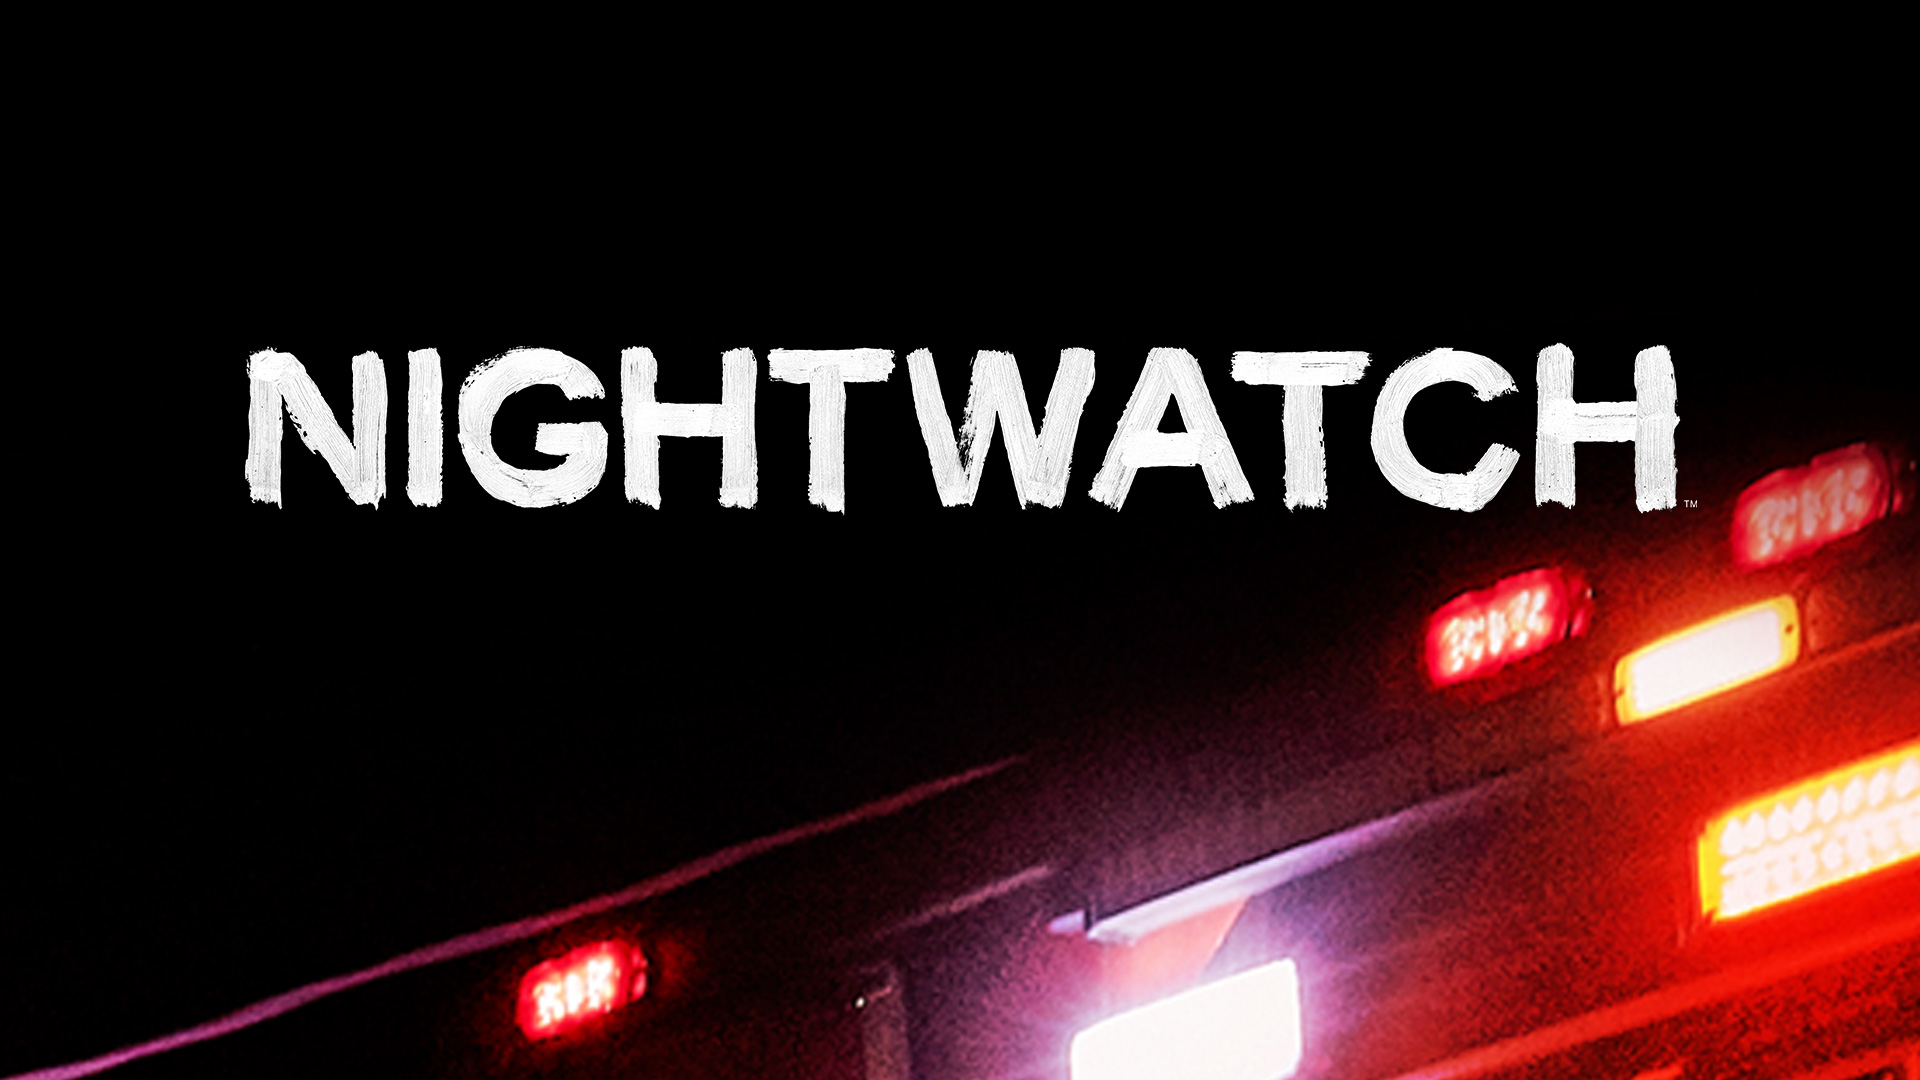 Nightwatch Full Episodes, Video & More | A&E